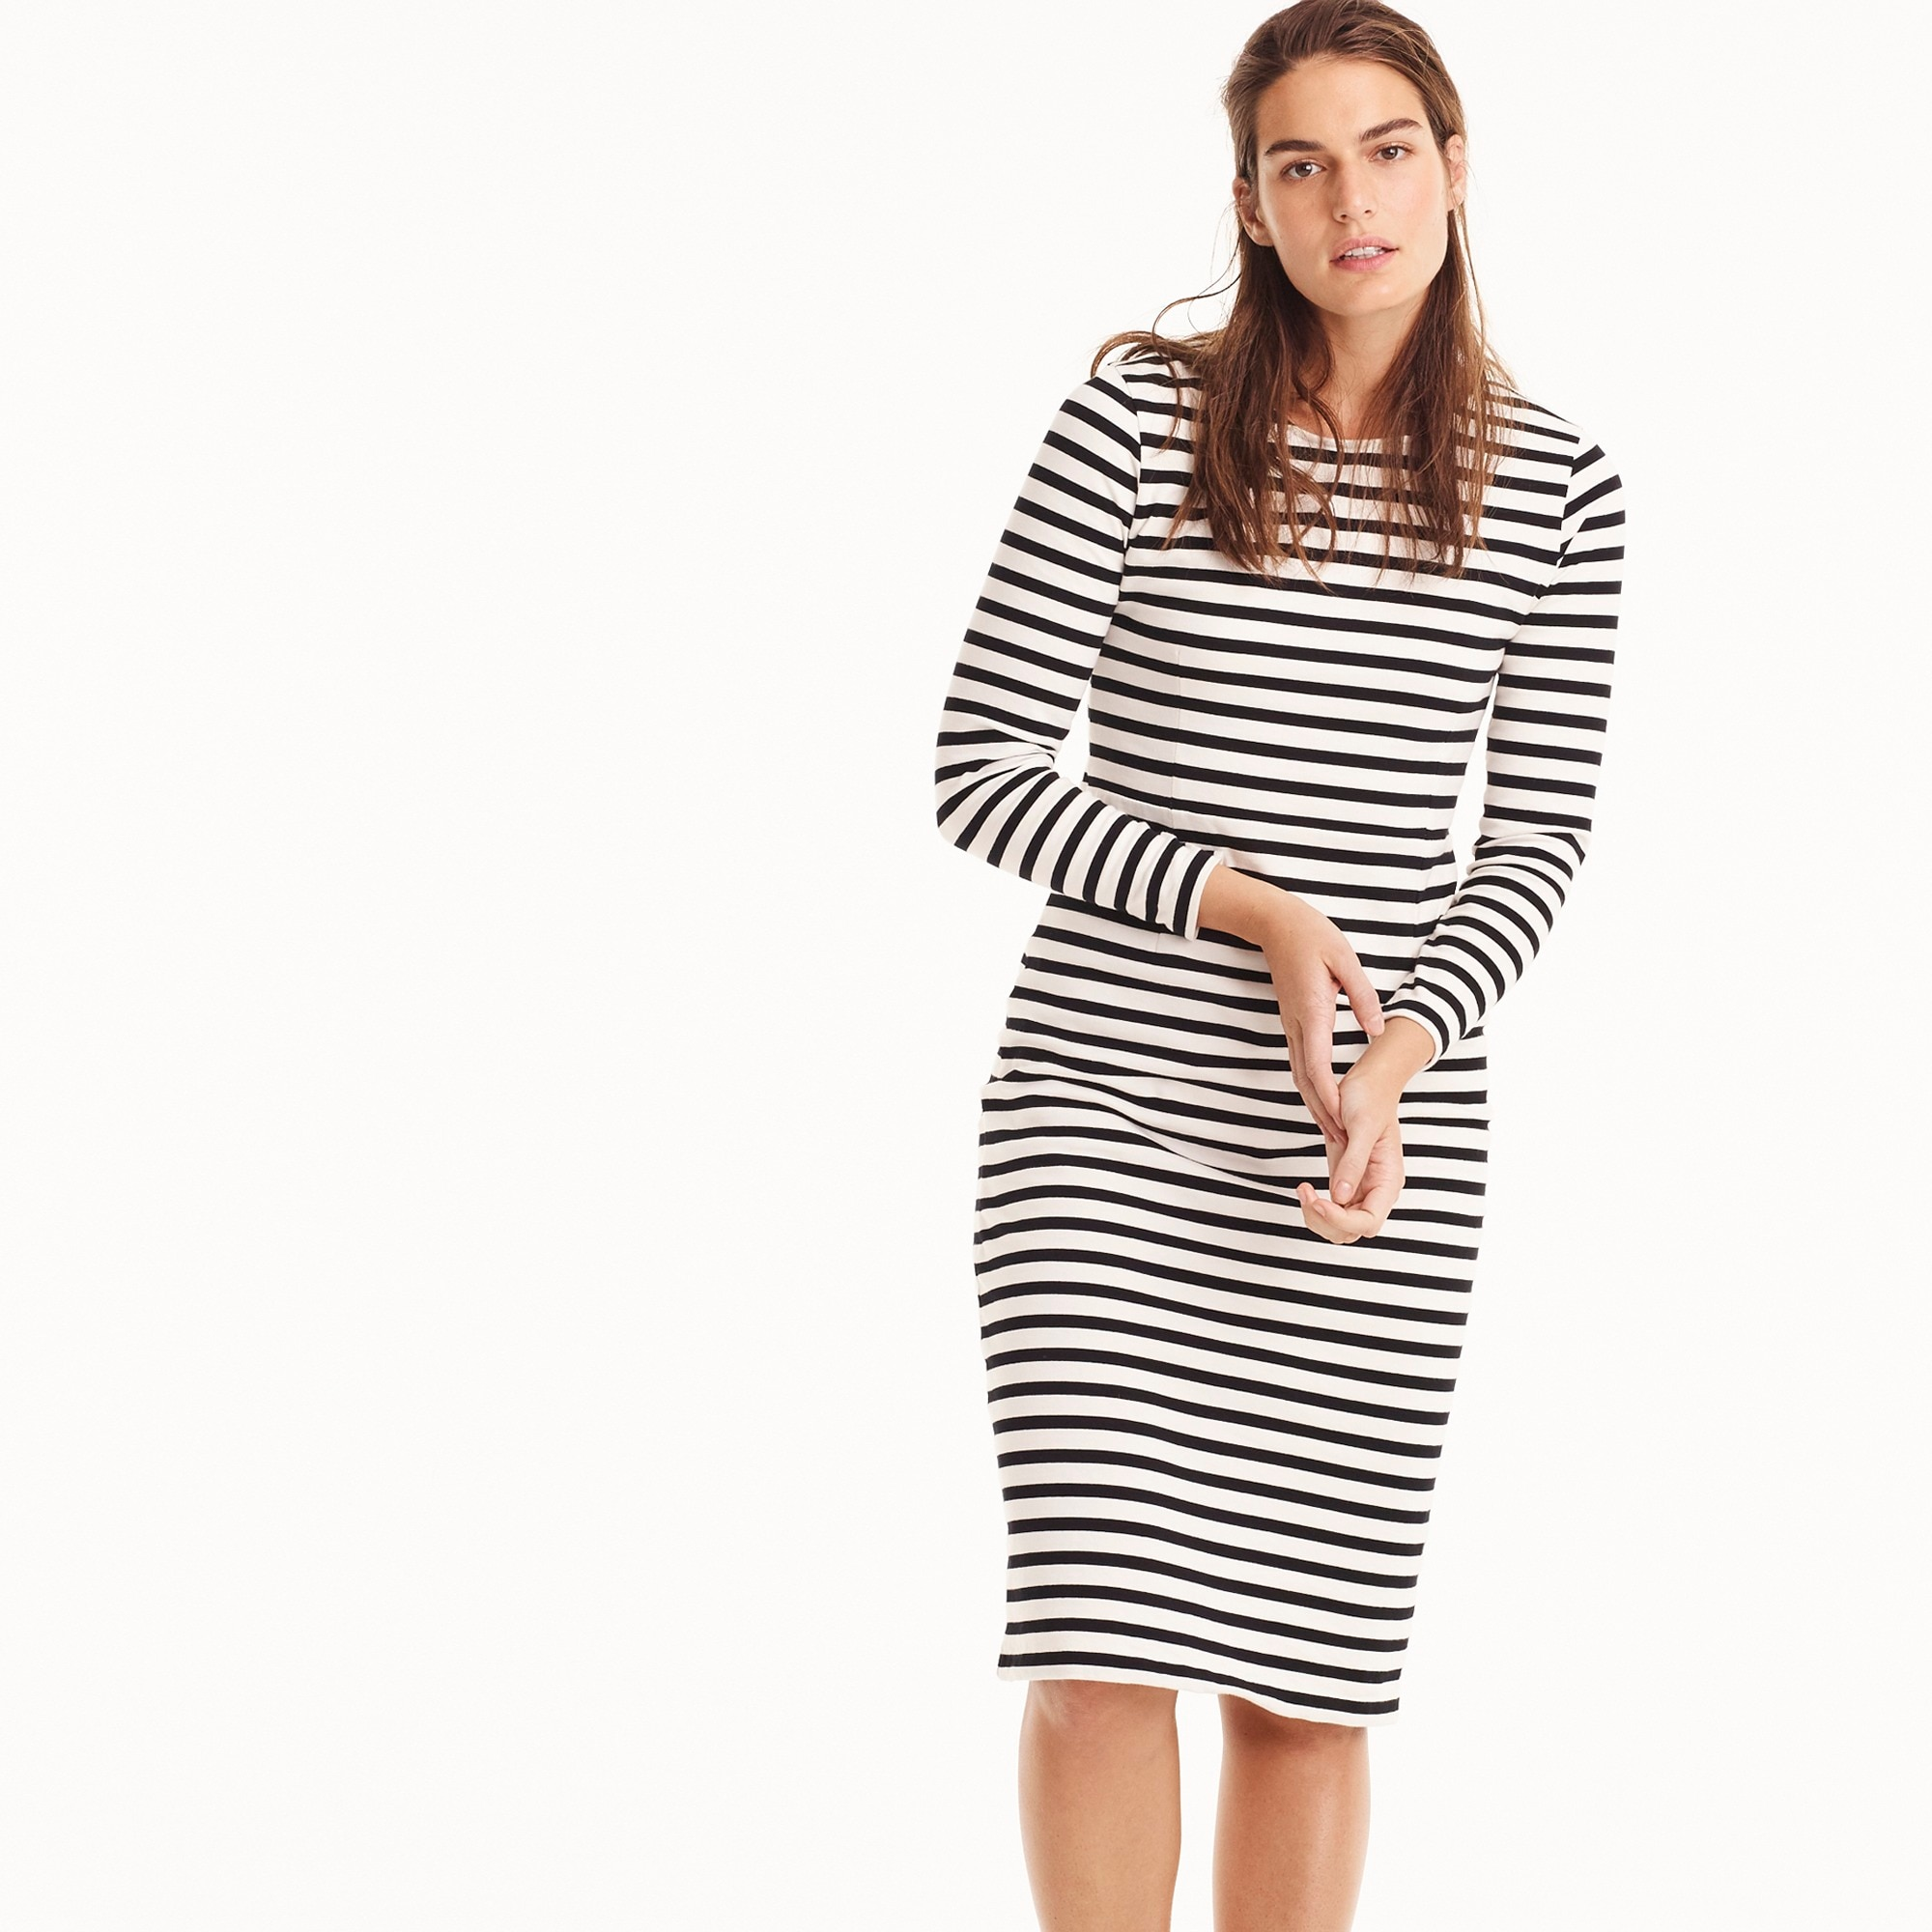 Image 3 for Long-sleeve striped dress